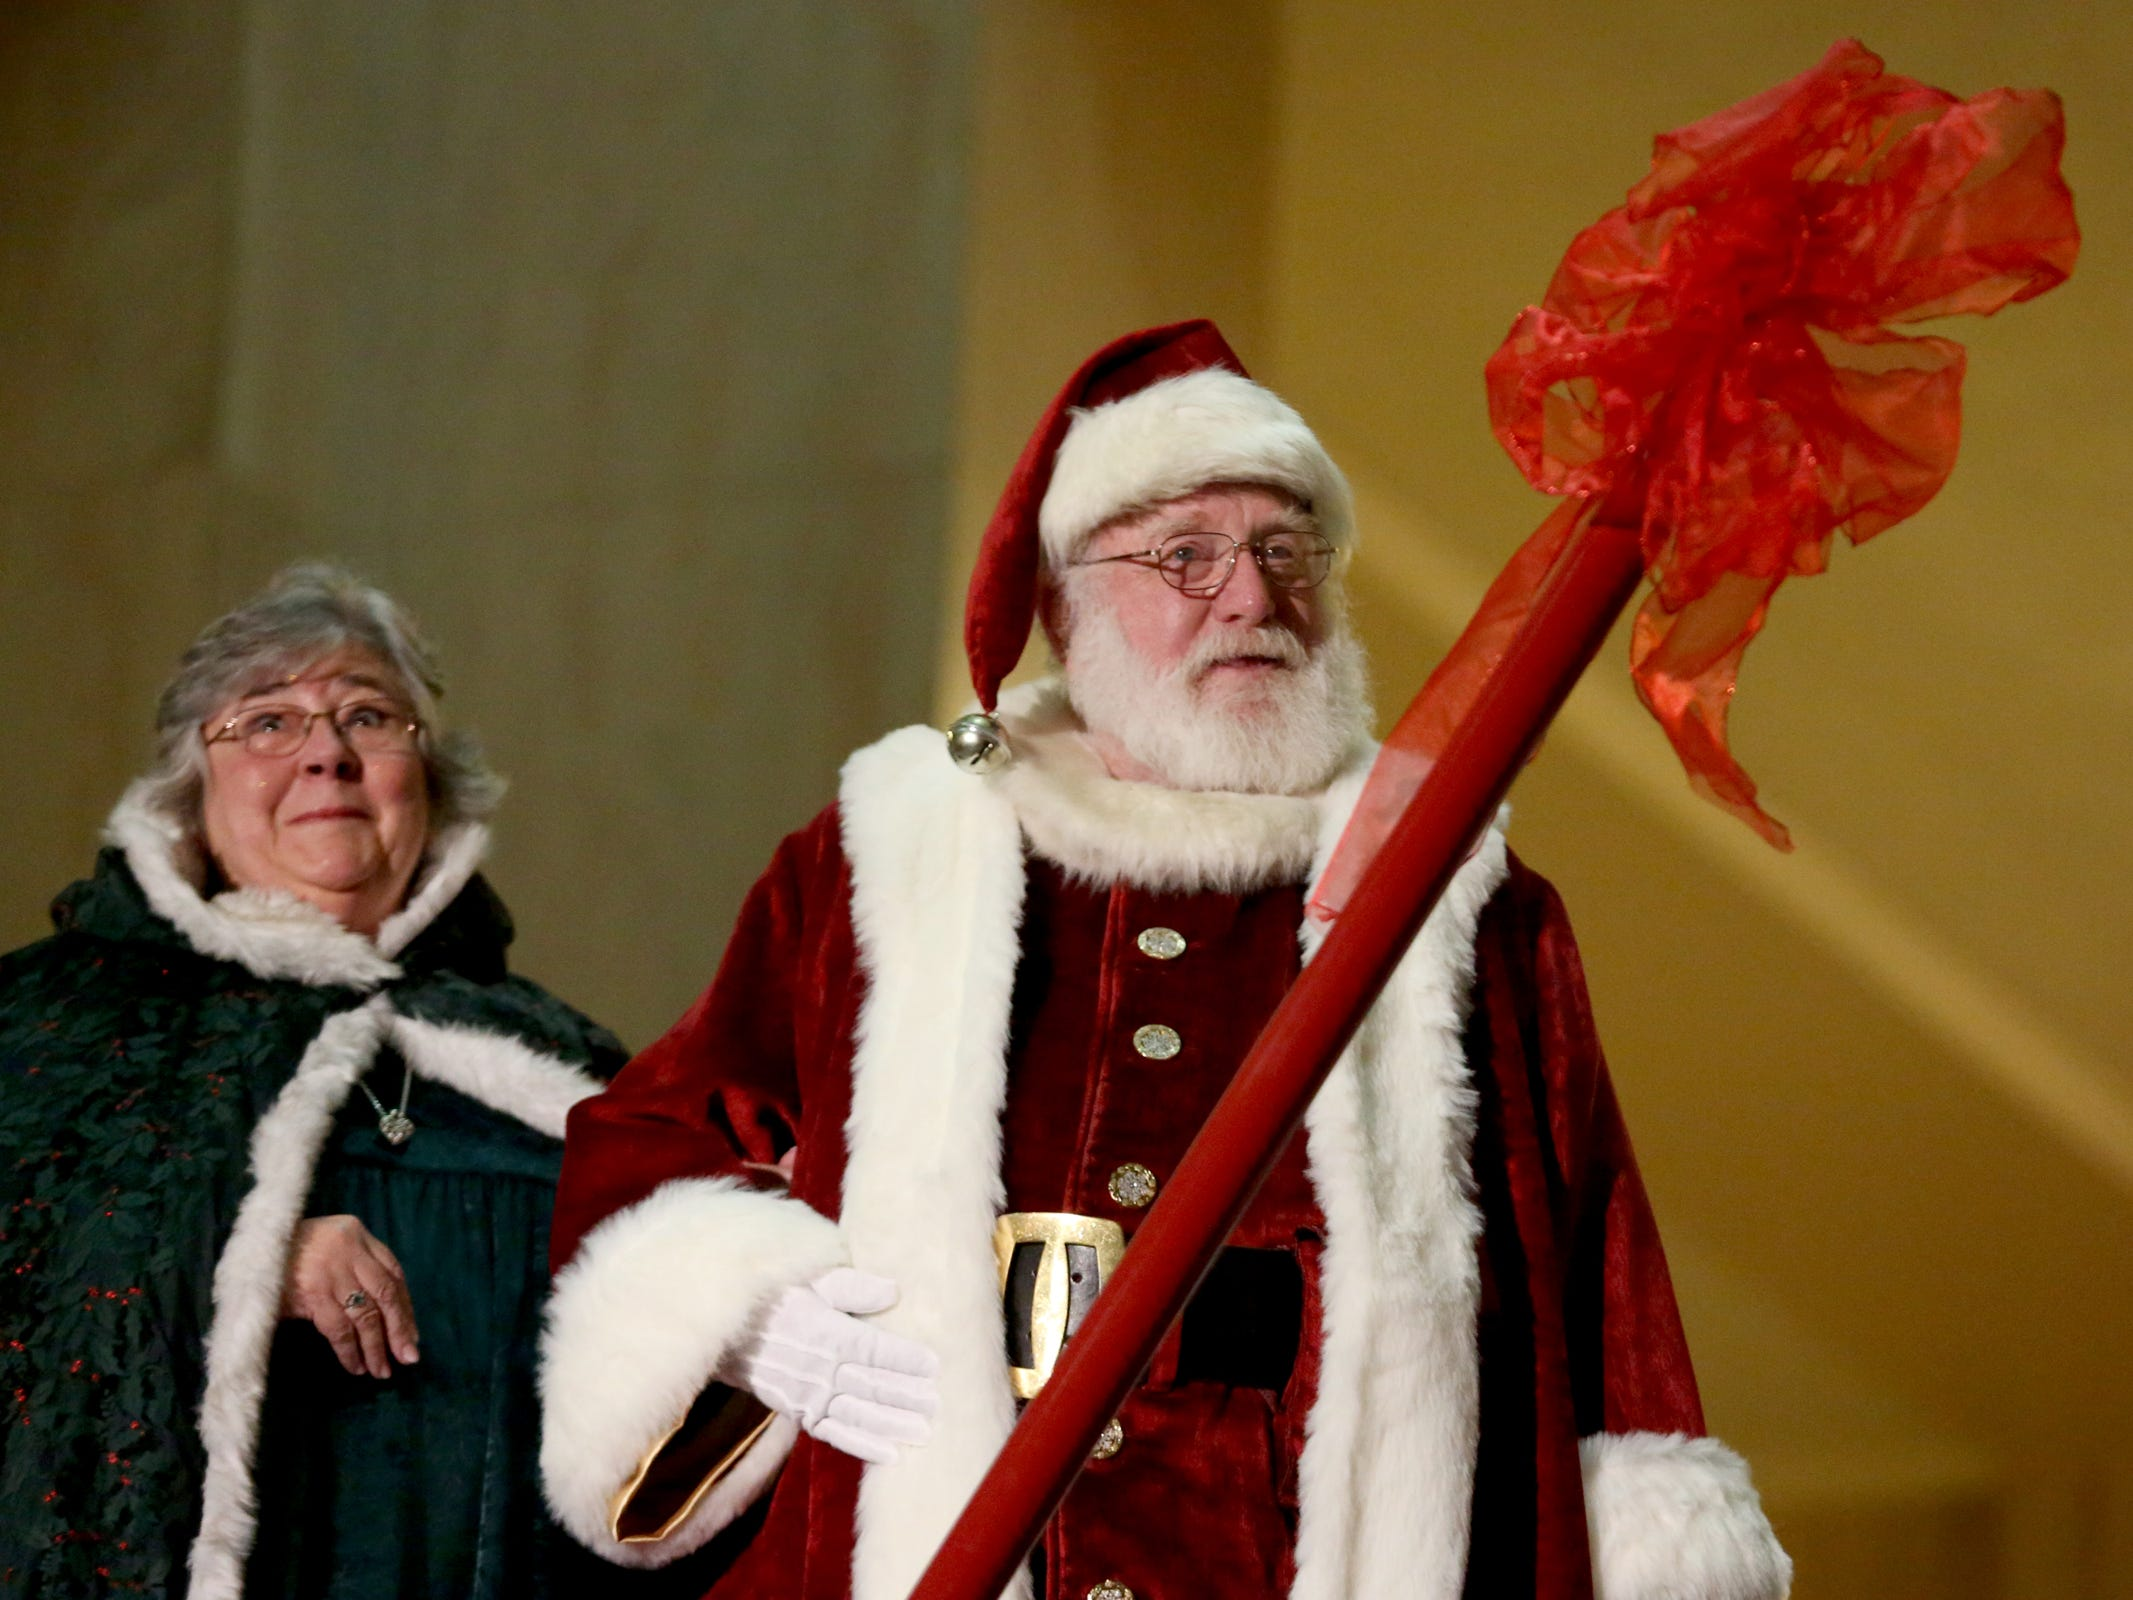 Santa and Mrs. Claus attend the Holiday Tree Lighting Celebration at the Oregon State Capitol in Salem on Tuesday, Nov. 27, 2018.